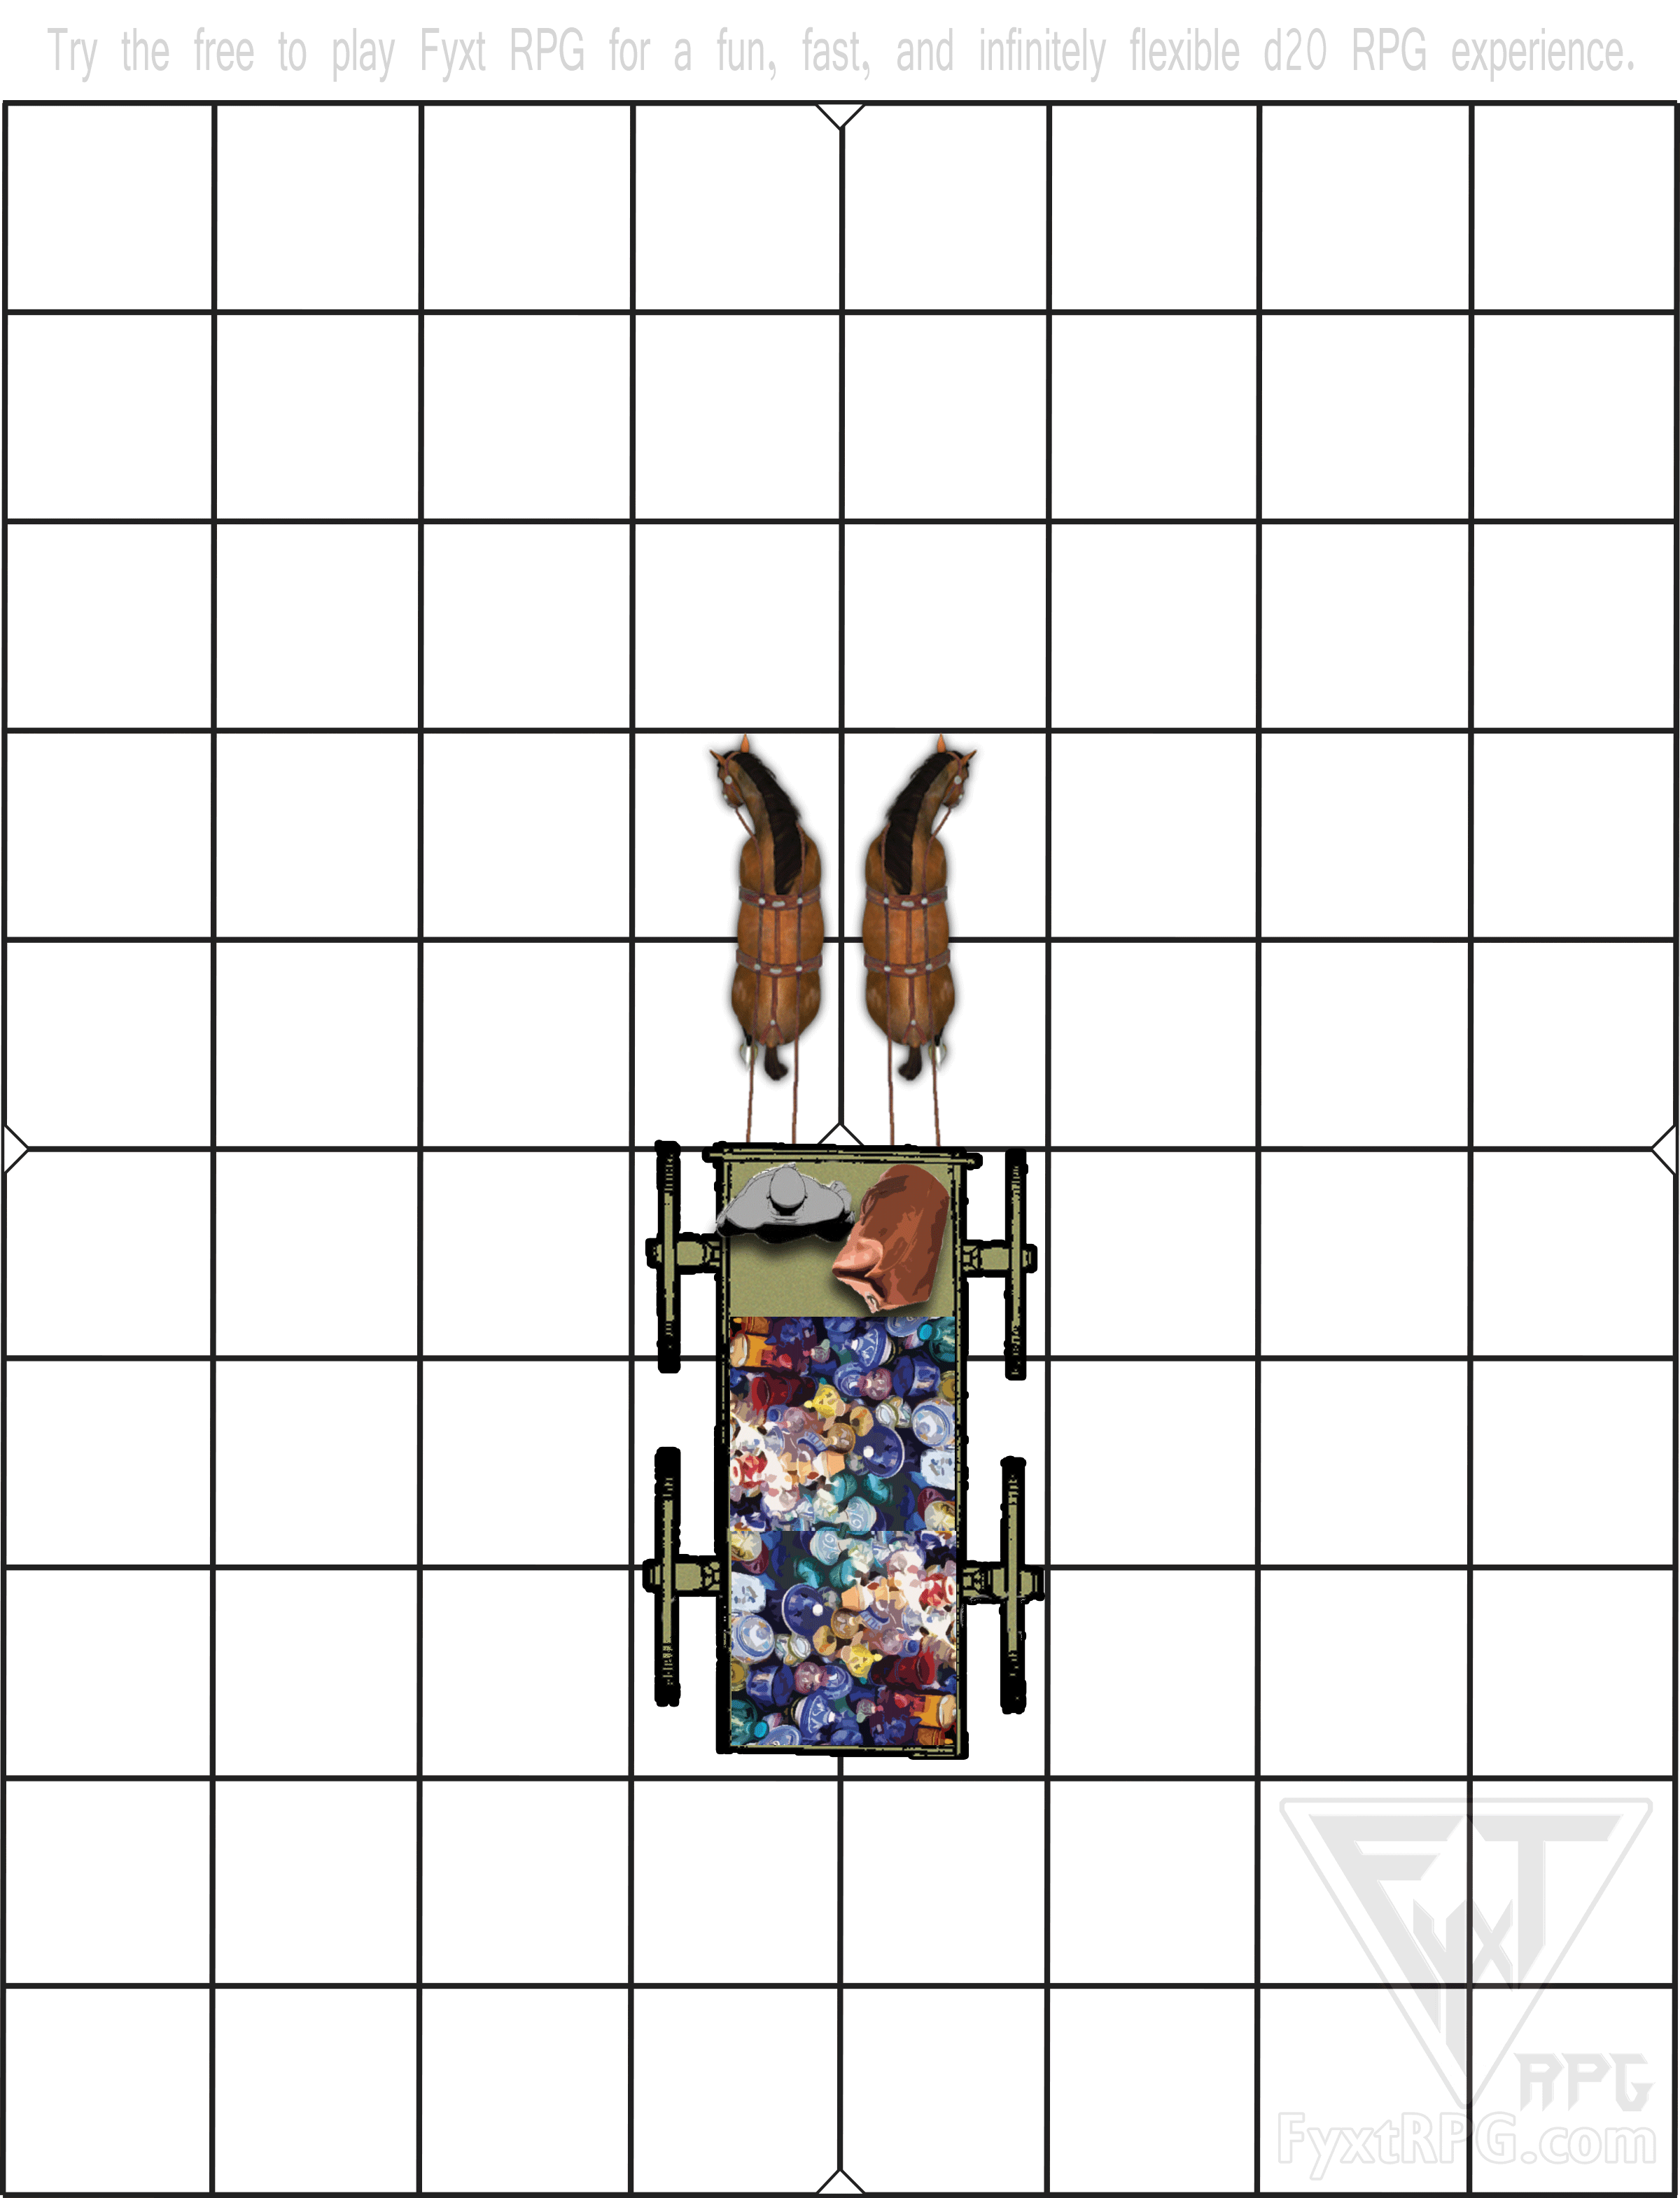 Fyxt RPG Instant Play Quest Printable Wagon Battle Mat